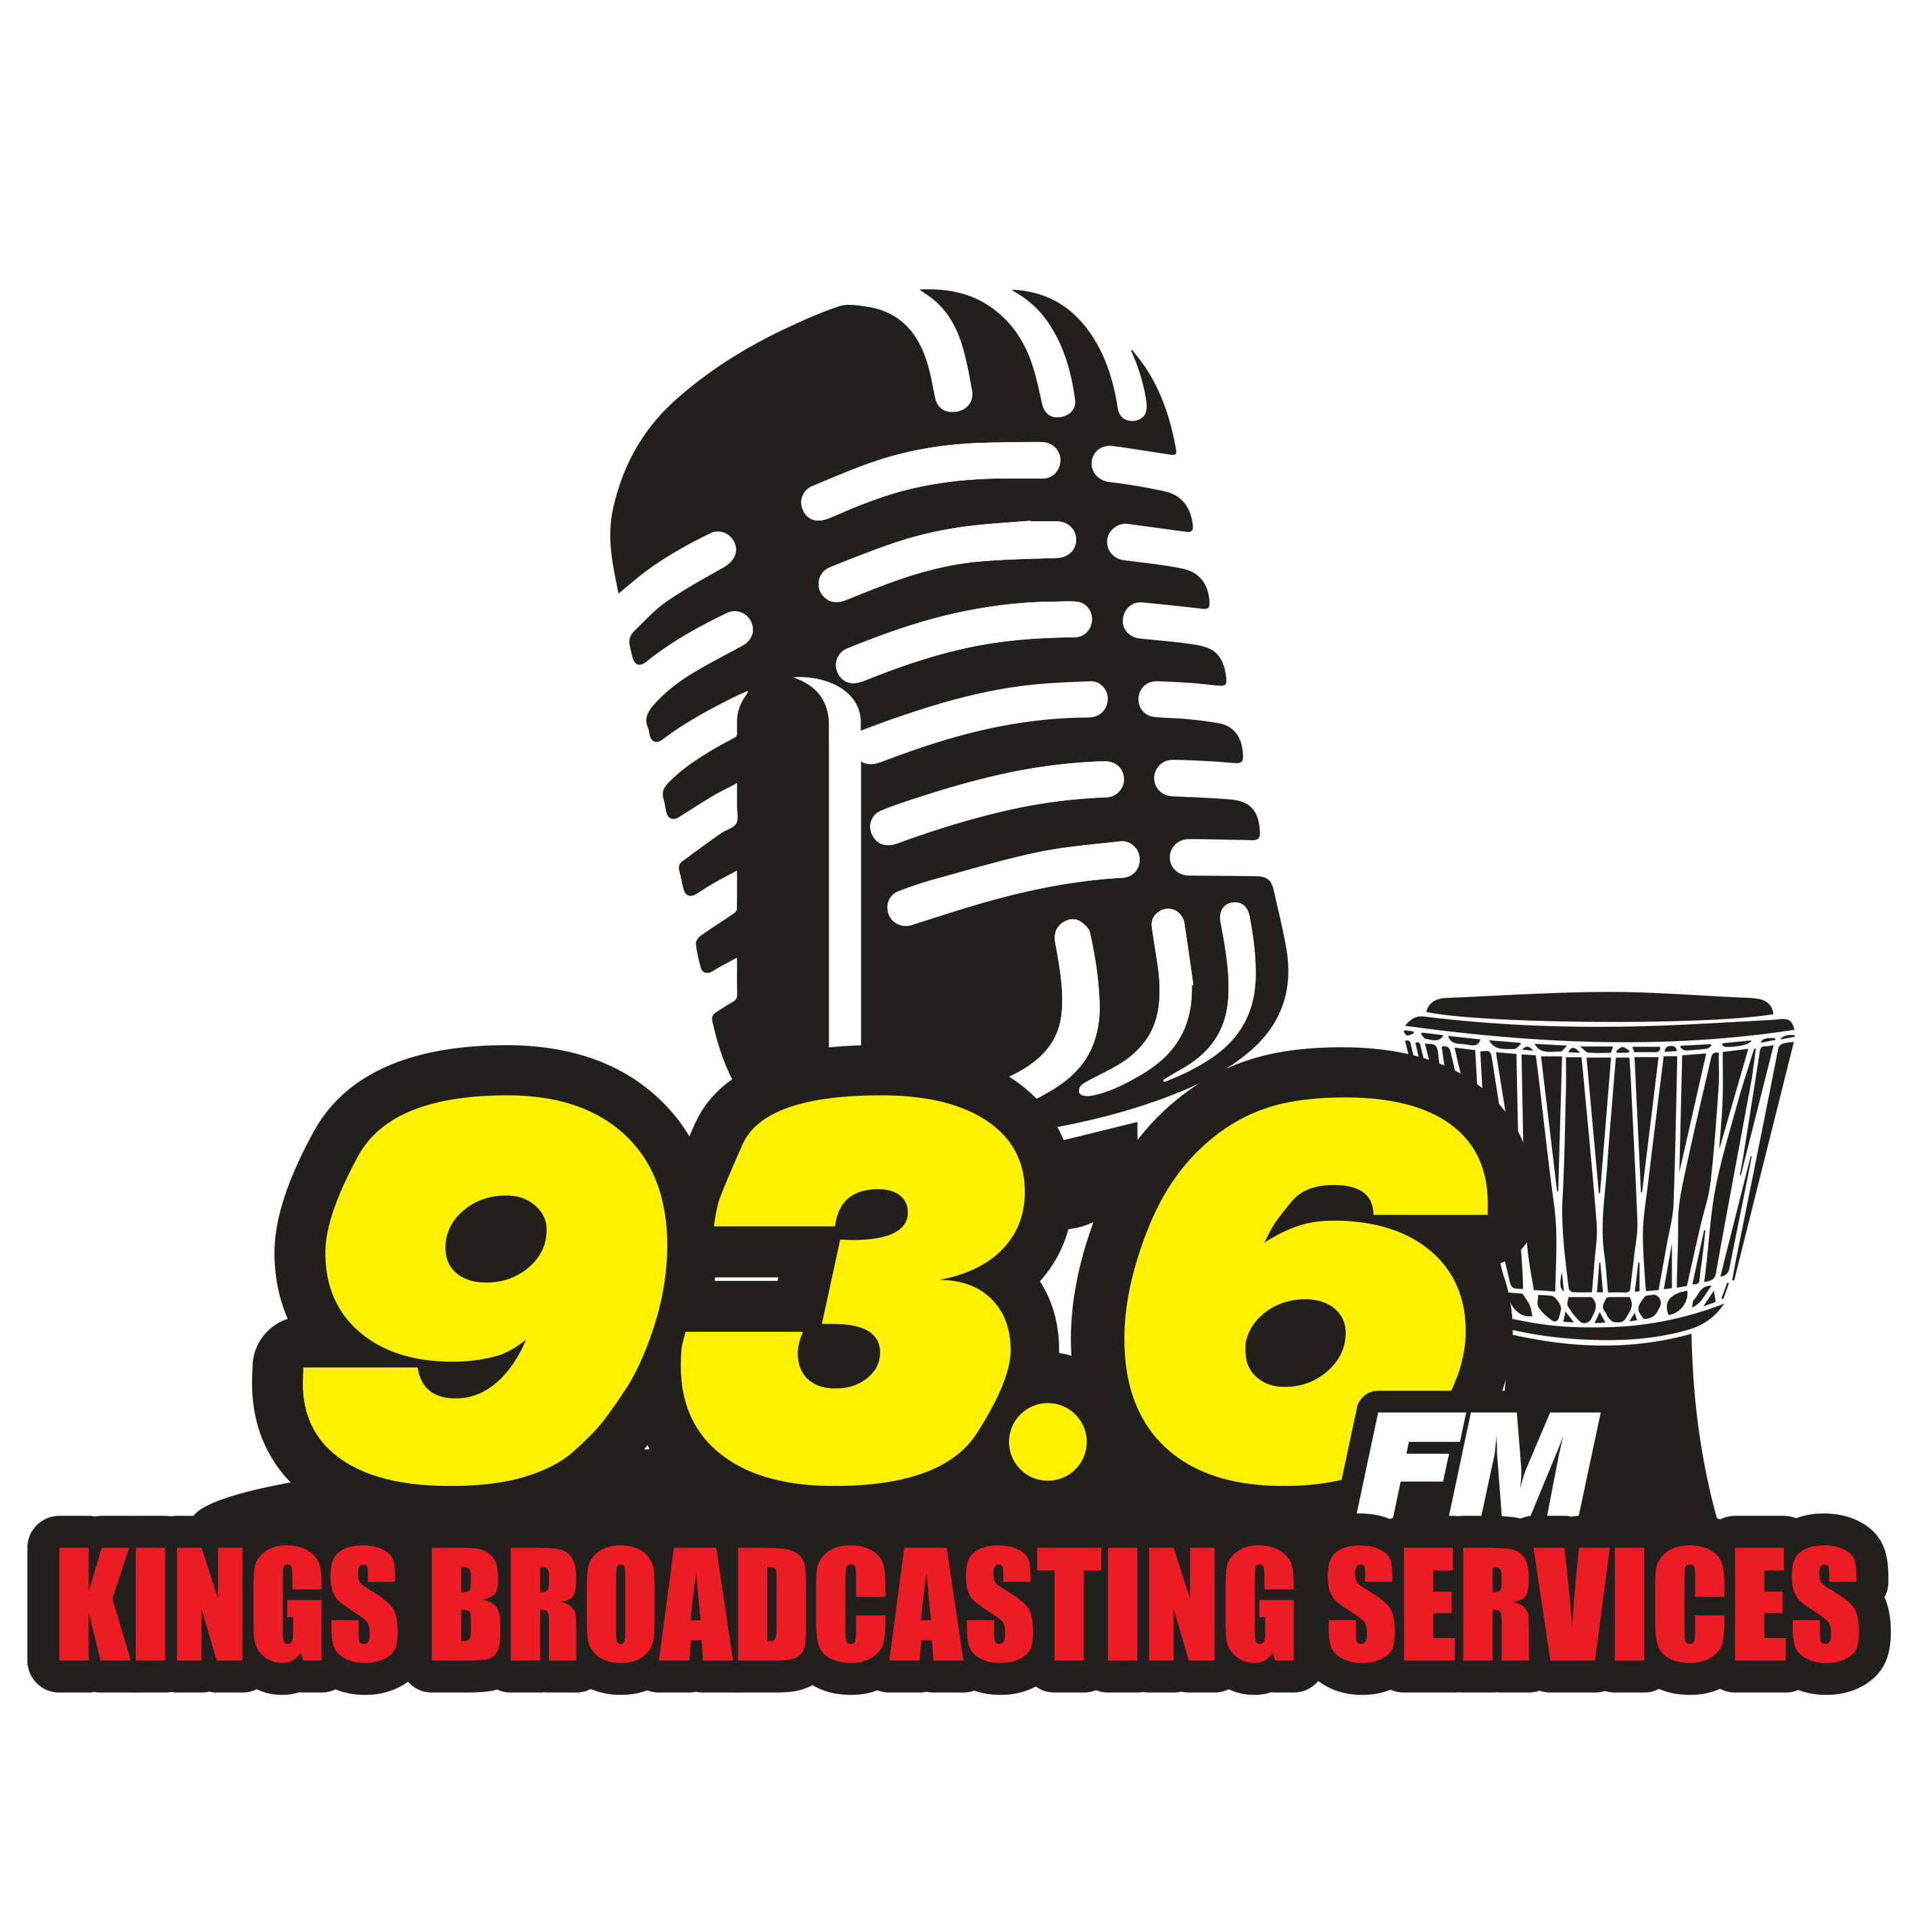 93.6 Kings Broadcasting Services